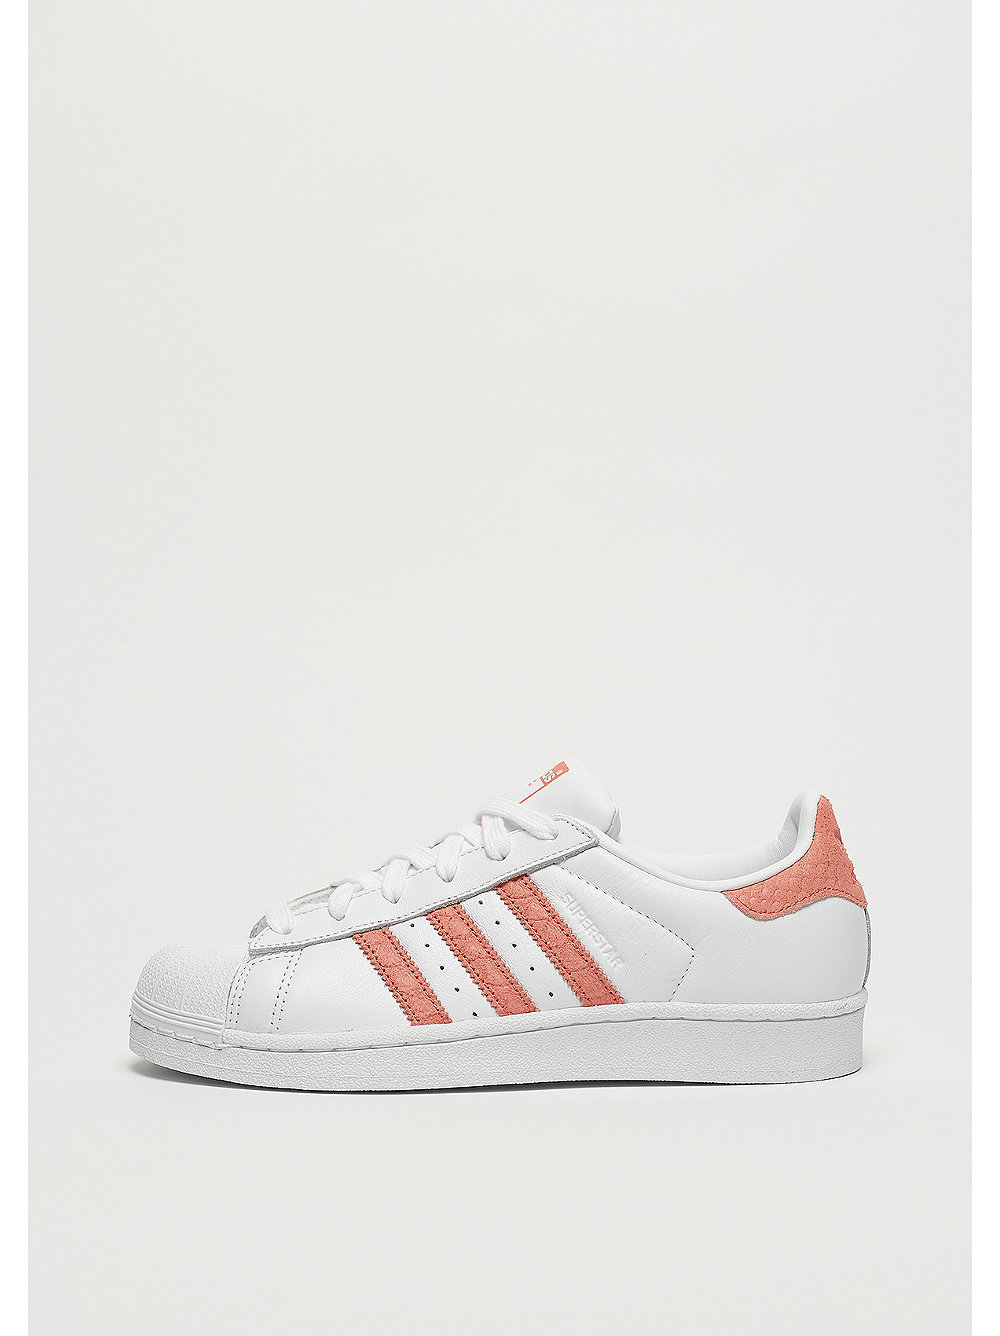 adidas Superstar W white-chalk coral-off white